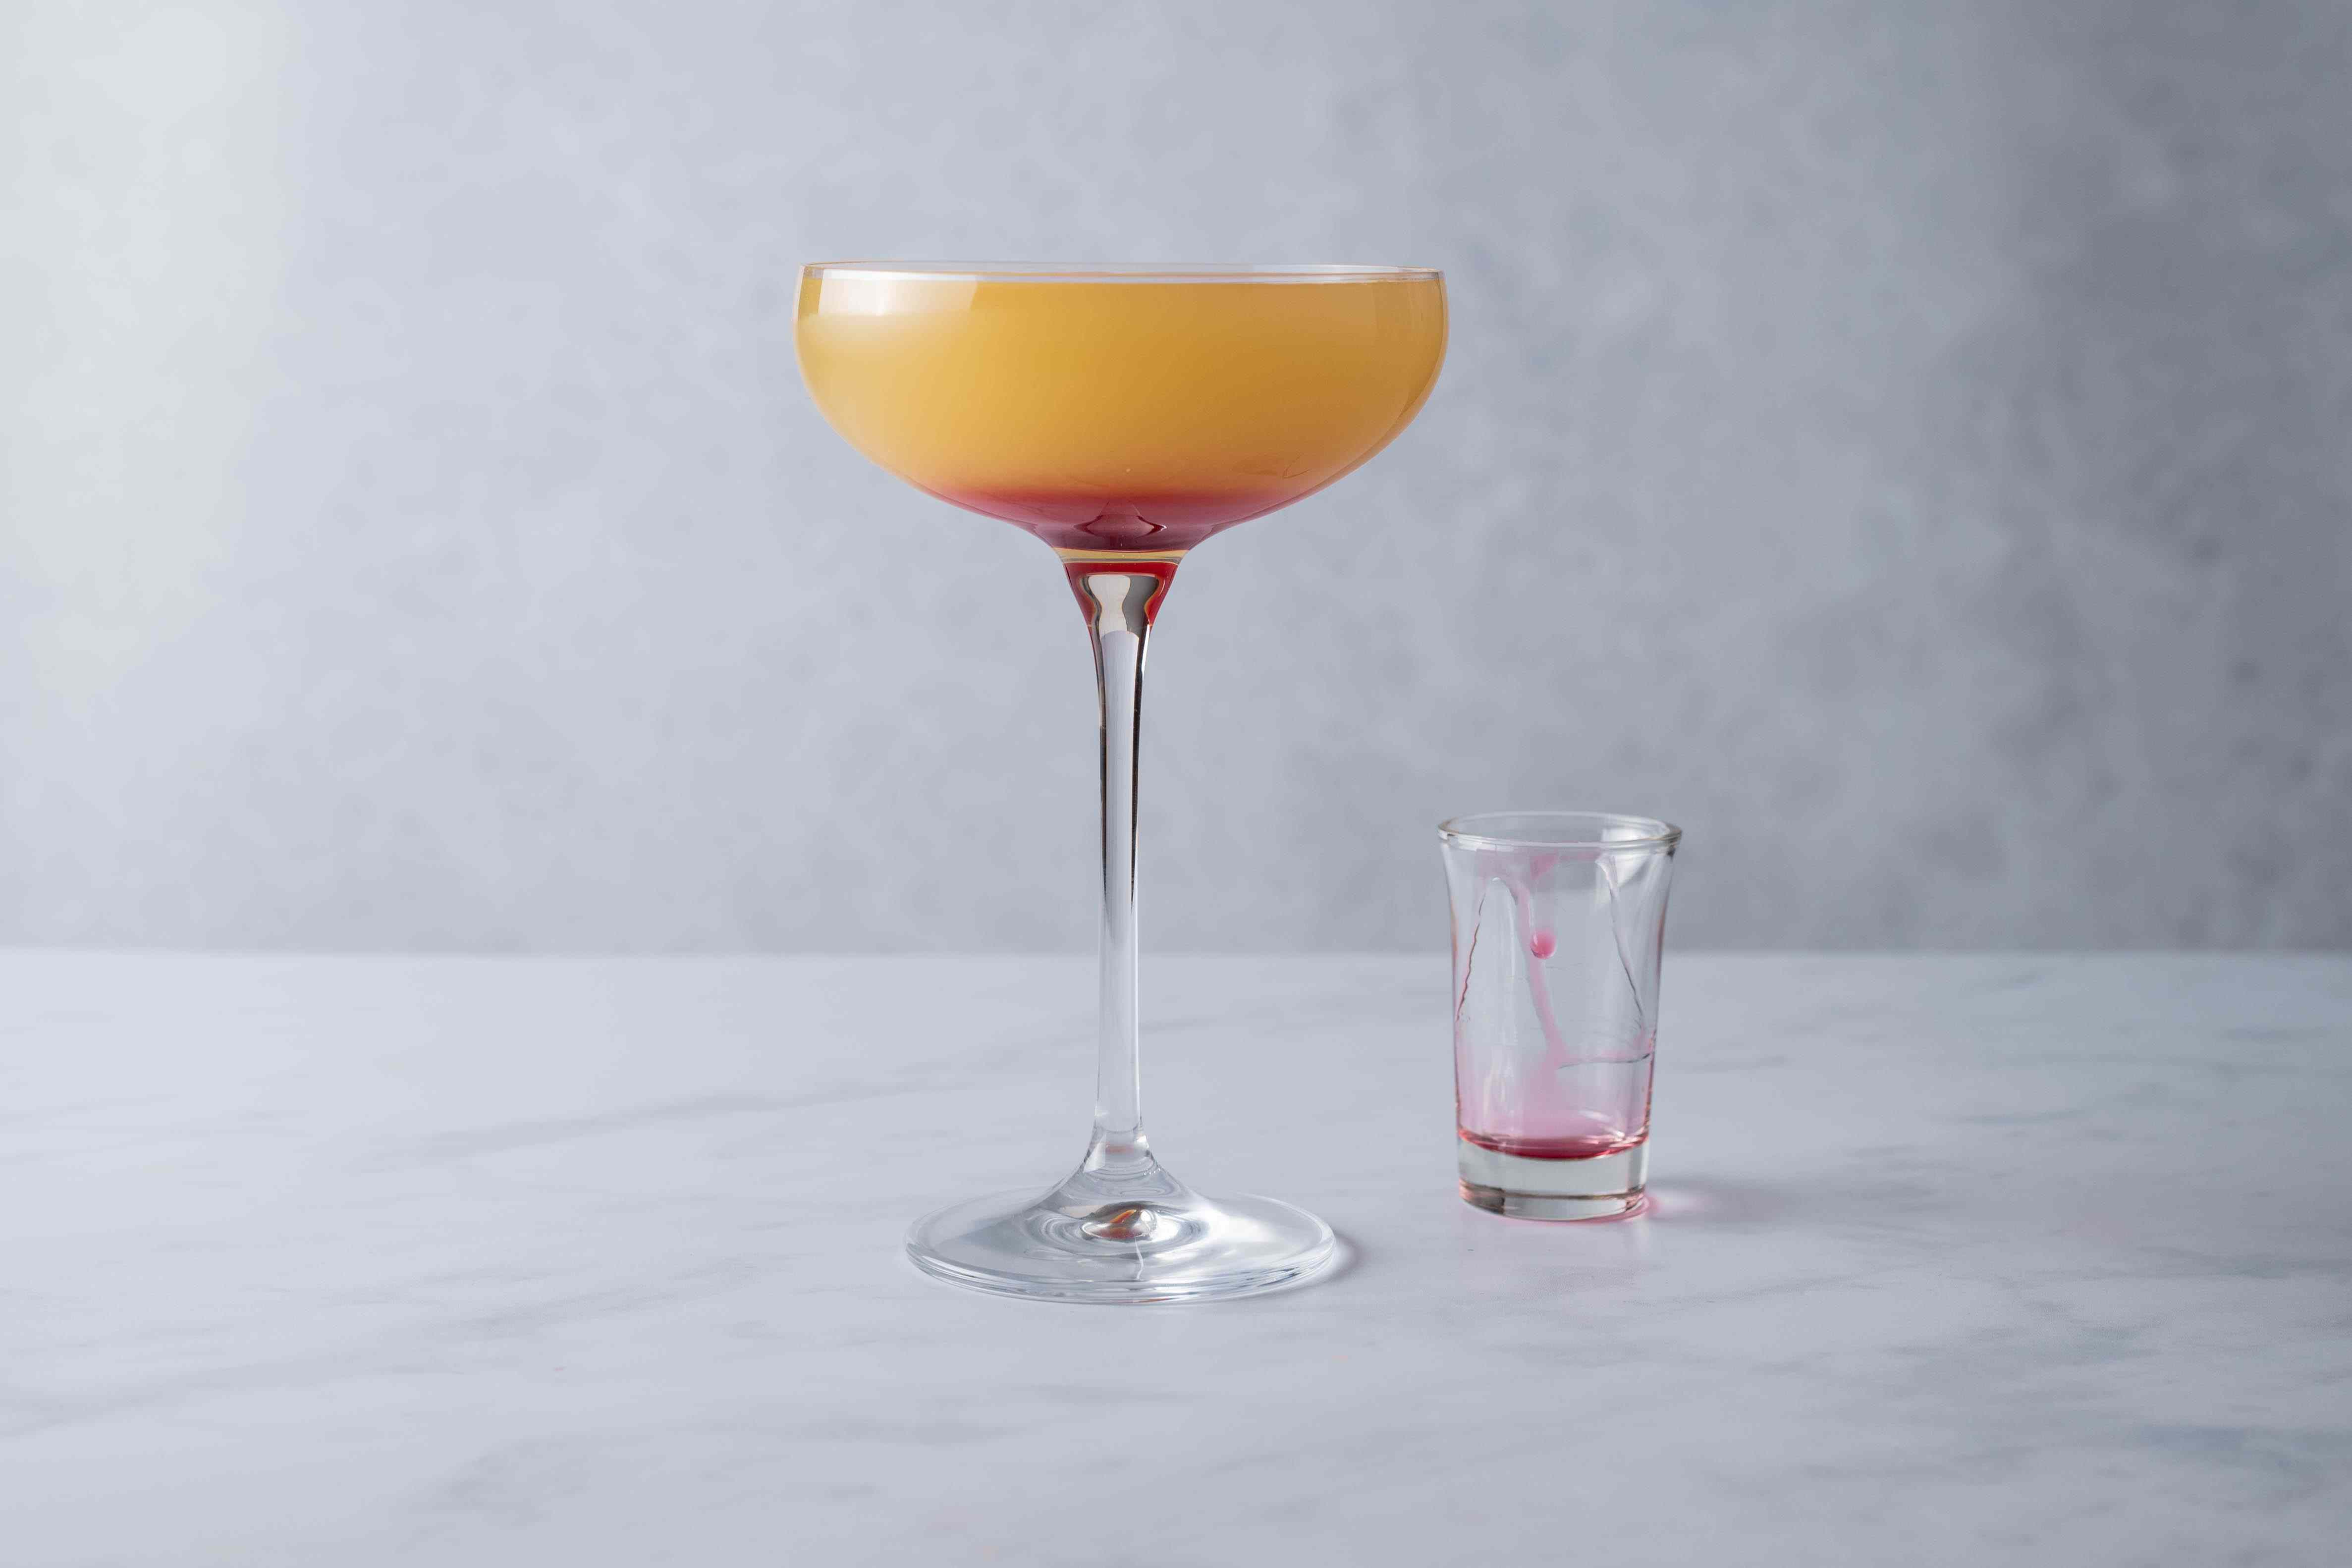 Top the cocktail with grenadine